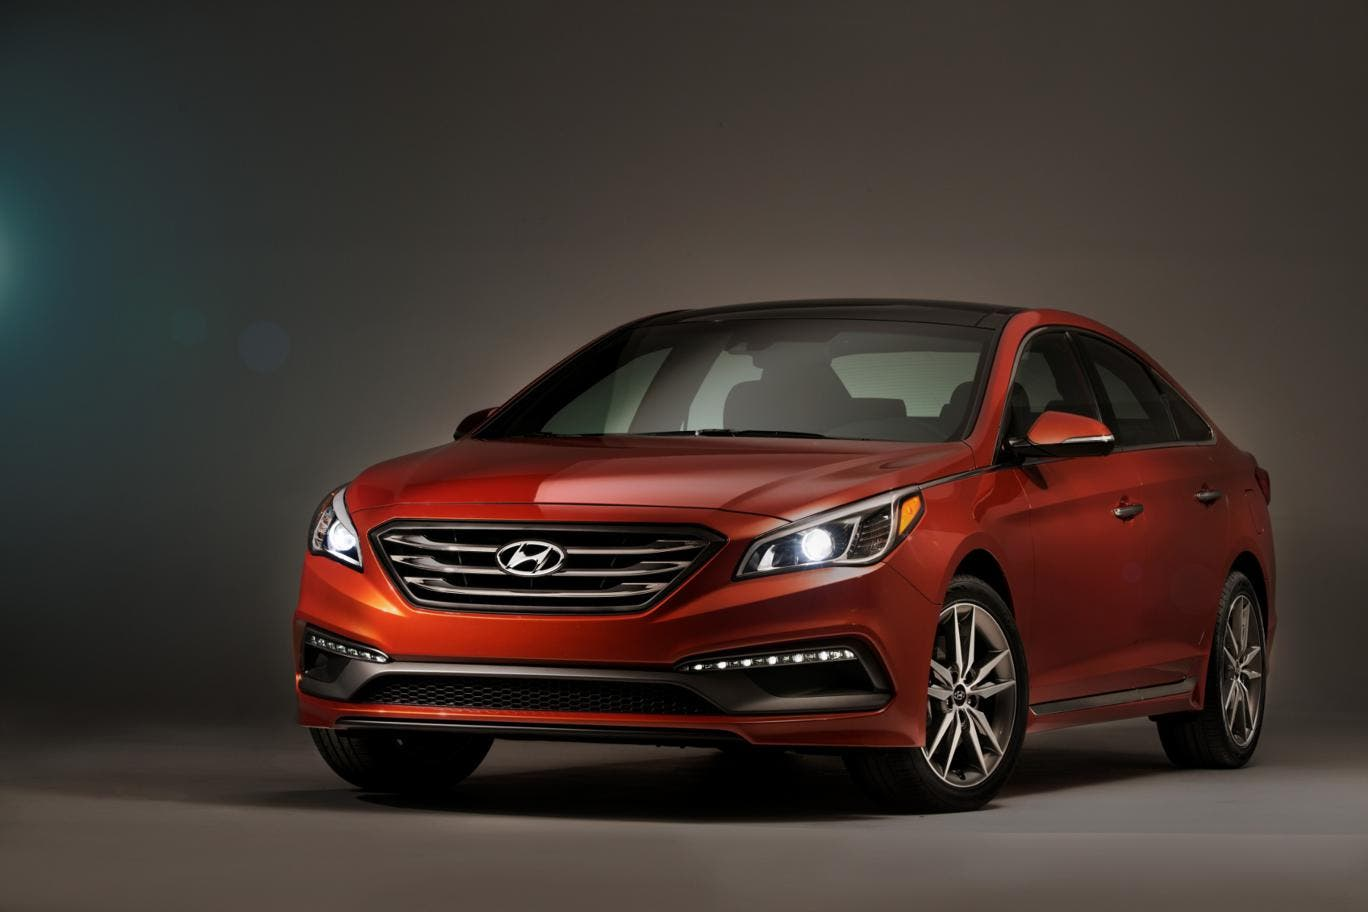 Hyundai Sonata 2015 mit Apples CarPlay